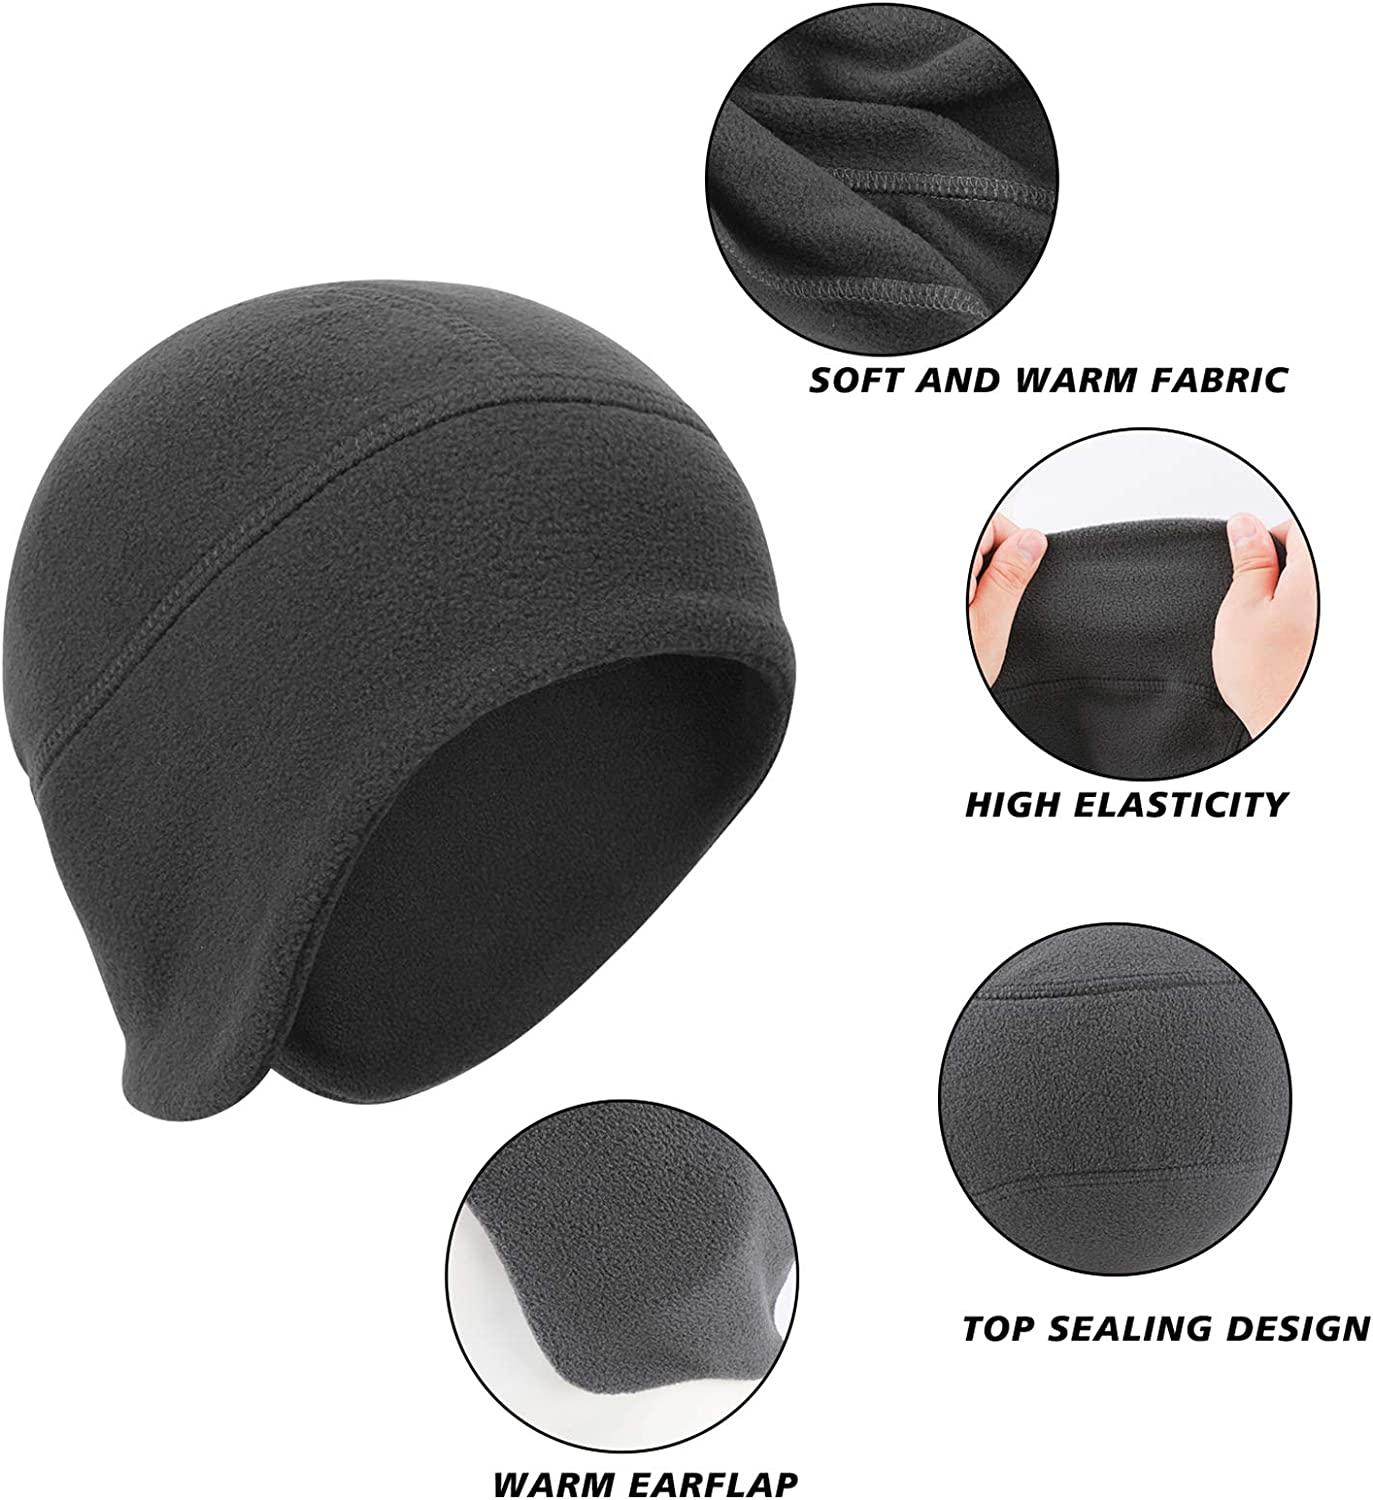 Sport Beanie Hat with Ear Covers for Men Women Running Skiing /& Winter Sports-Perfect Under Motorcycle Helmets,Hard Hat Cushion QKURT 2 PCS Winter Cycling Skull Cap